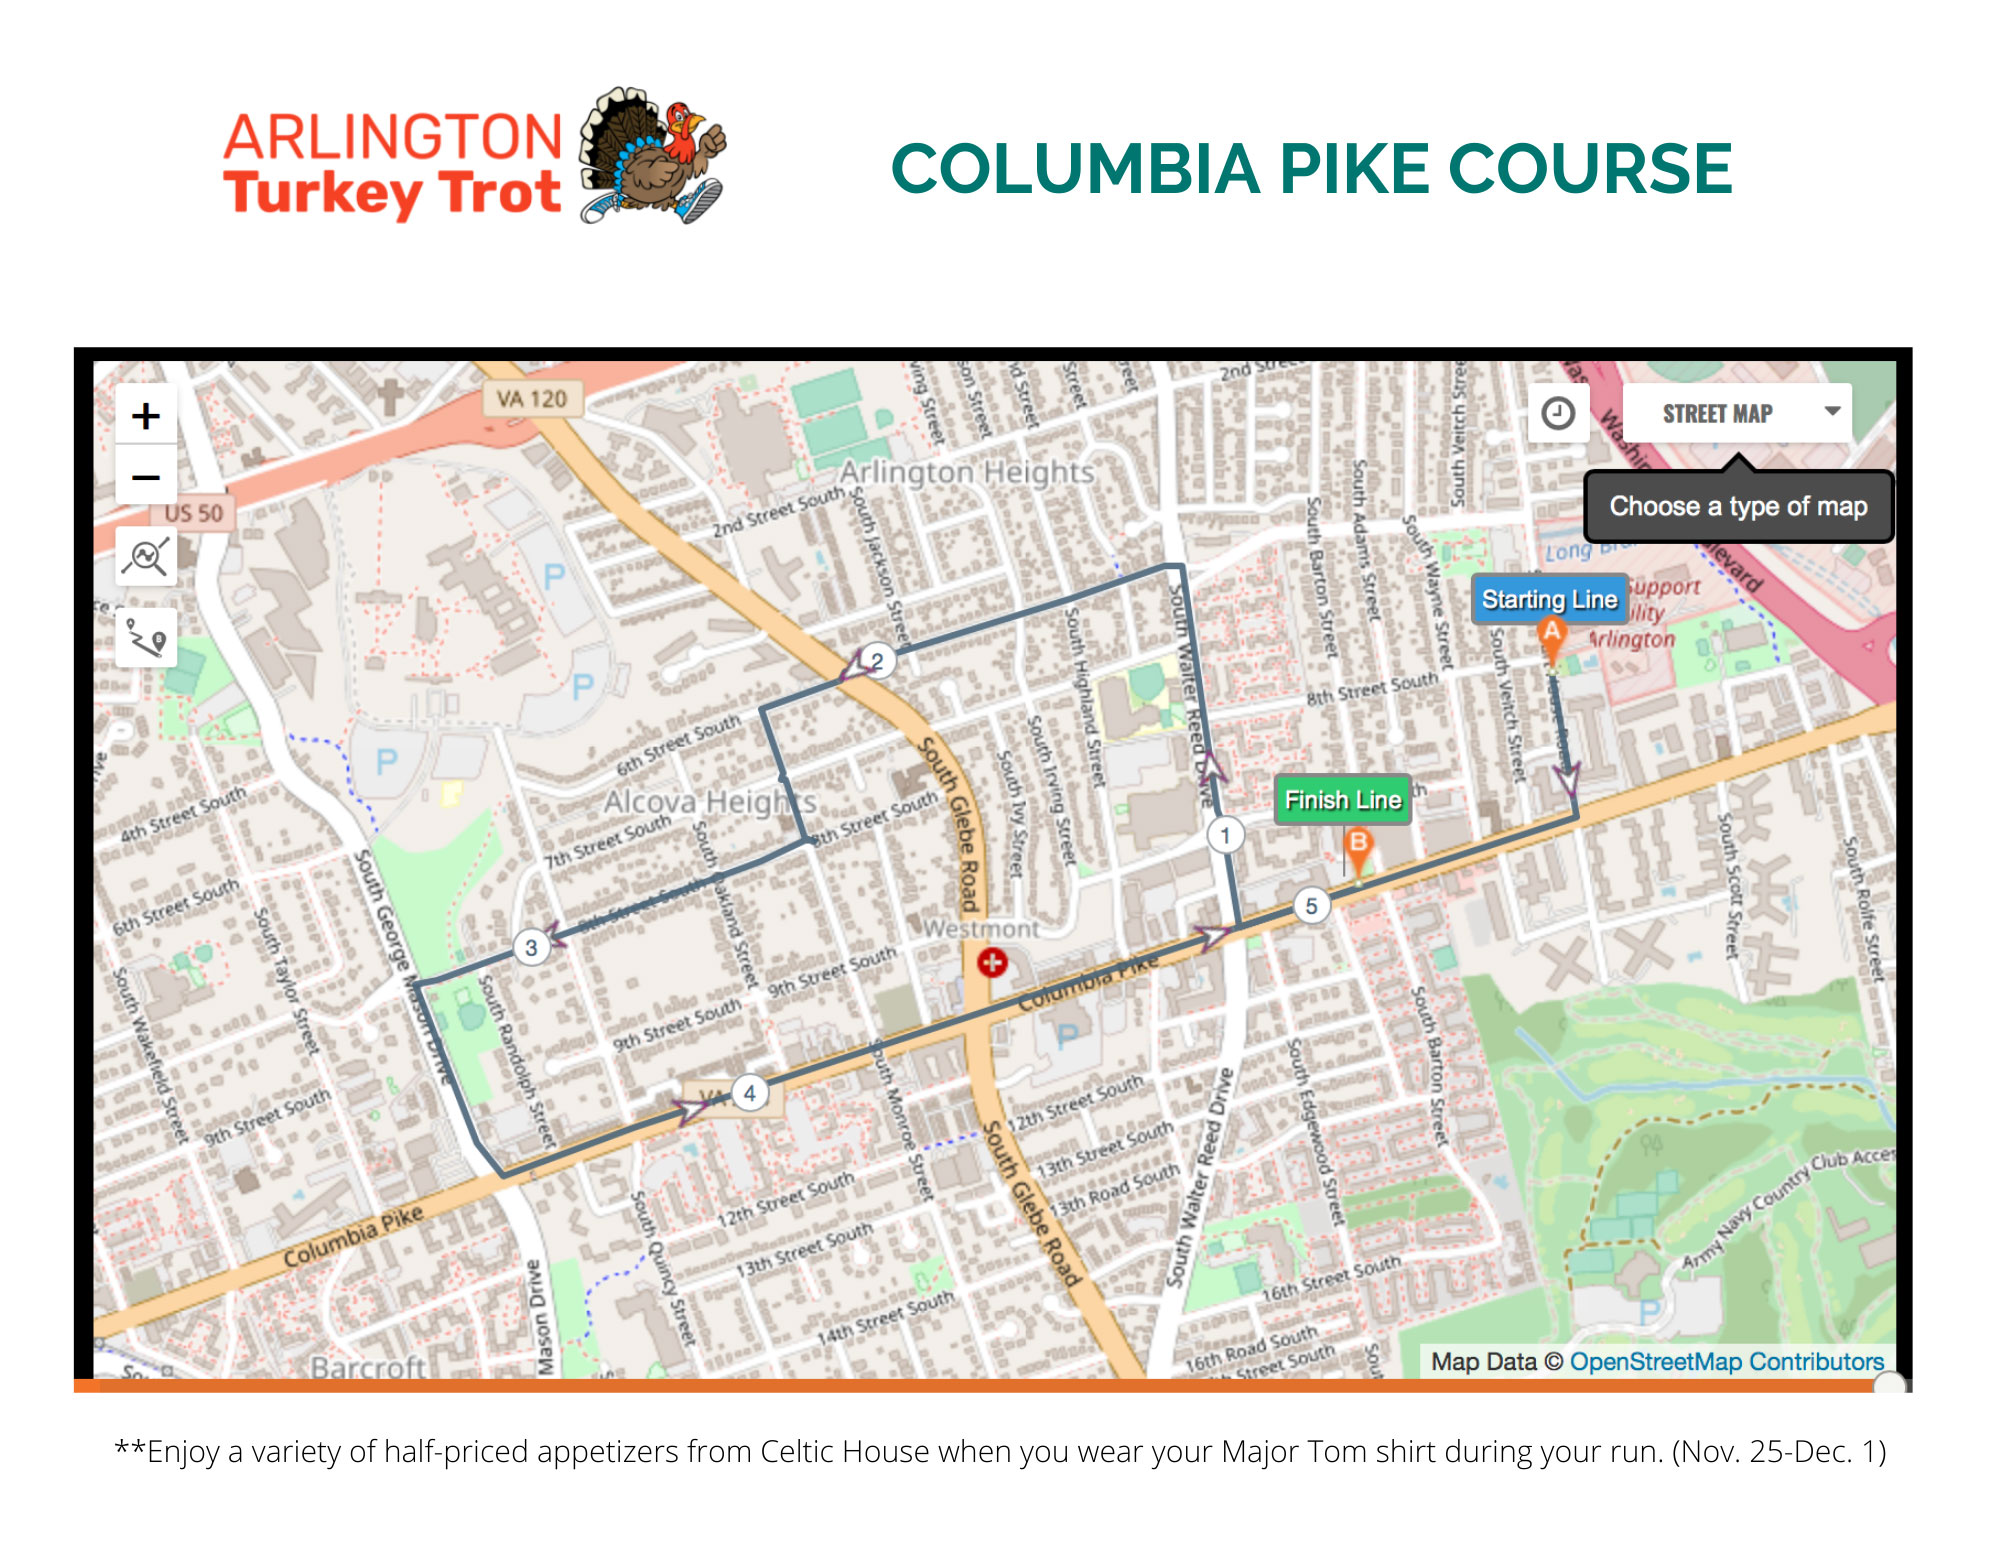 arlington-va-turkey-trot-columbia-pike-course-map